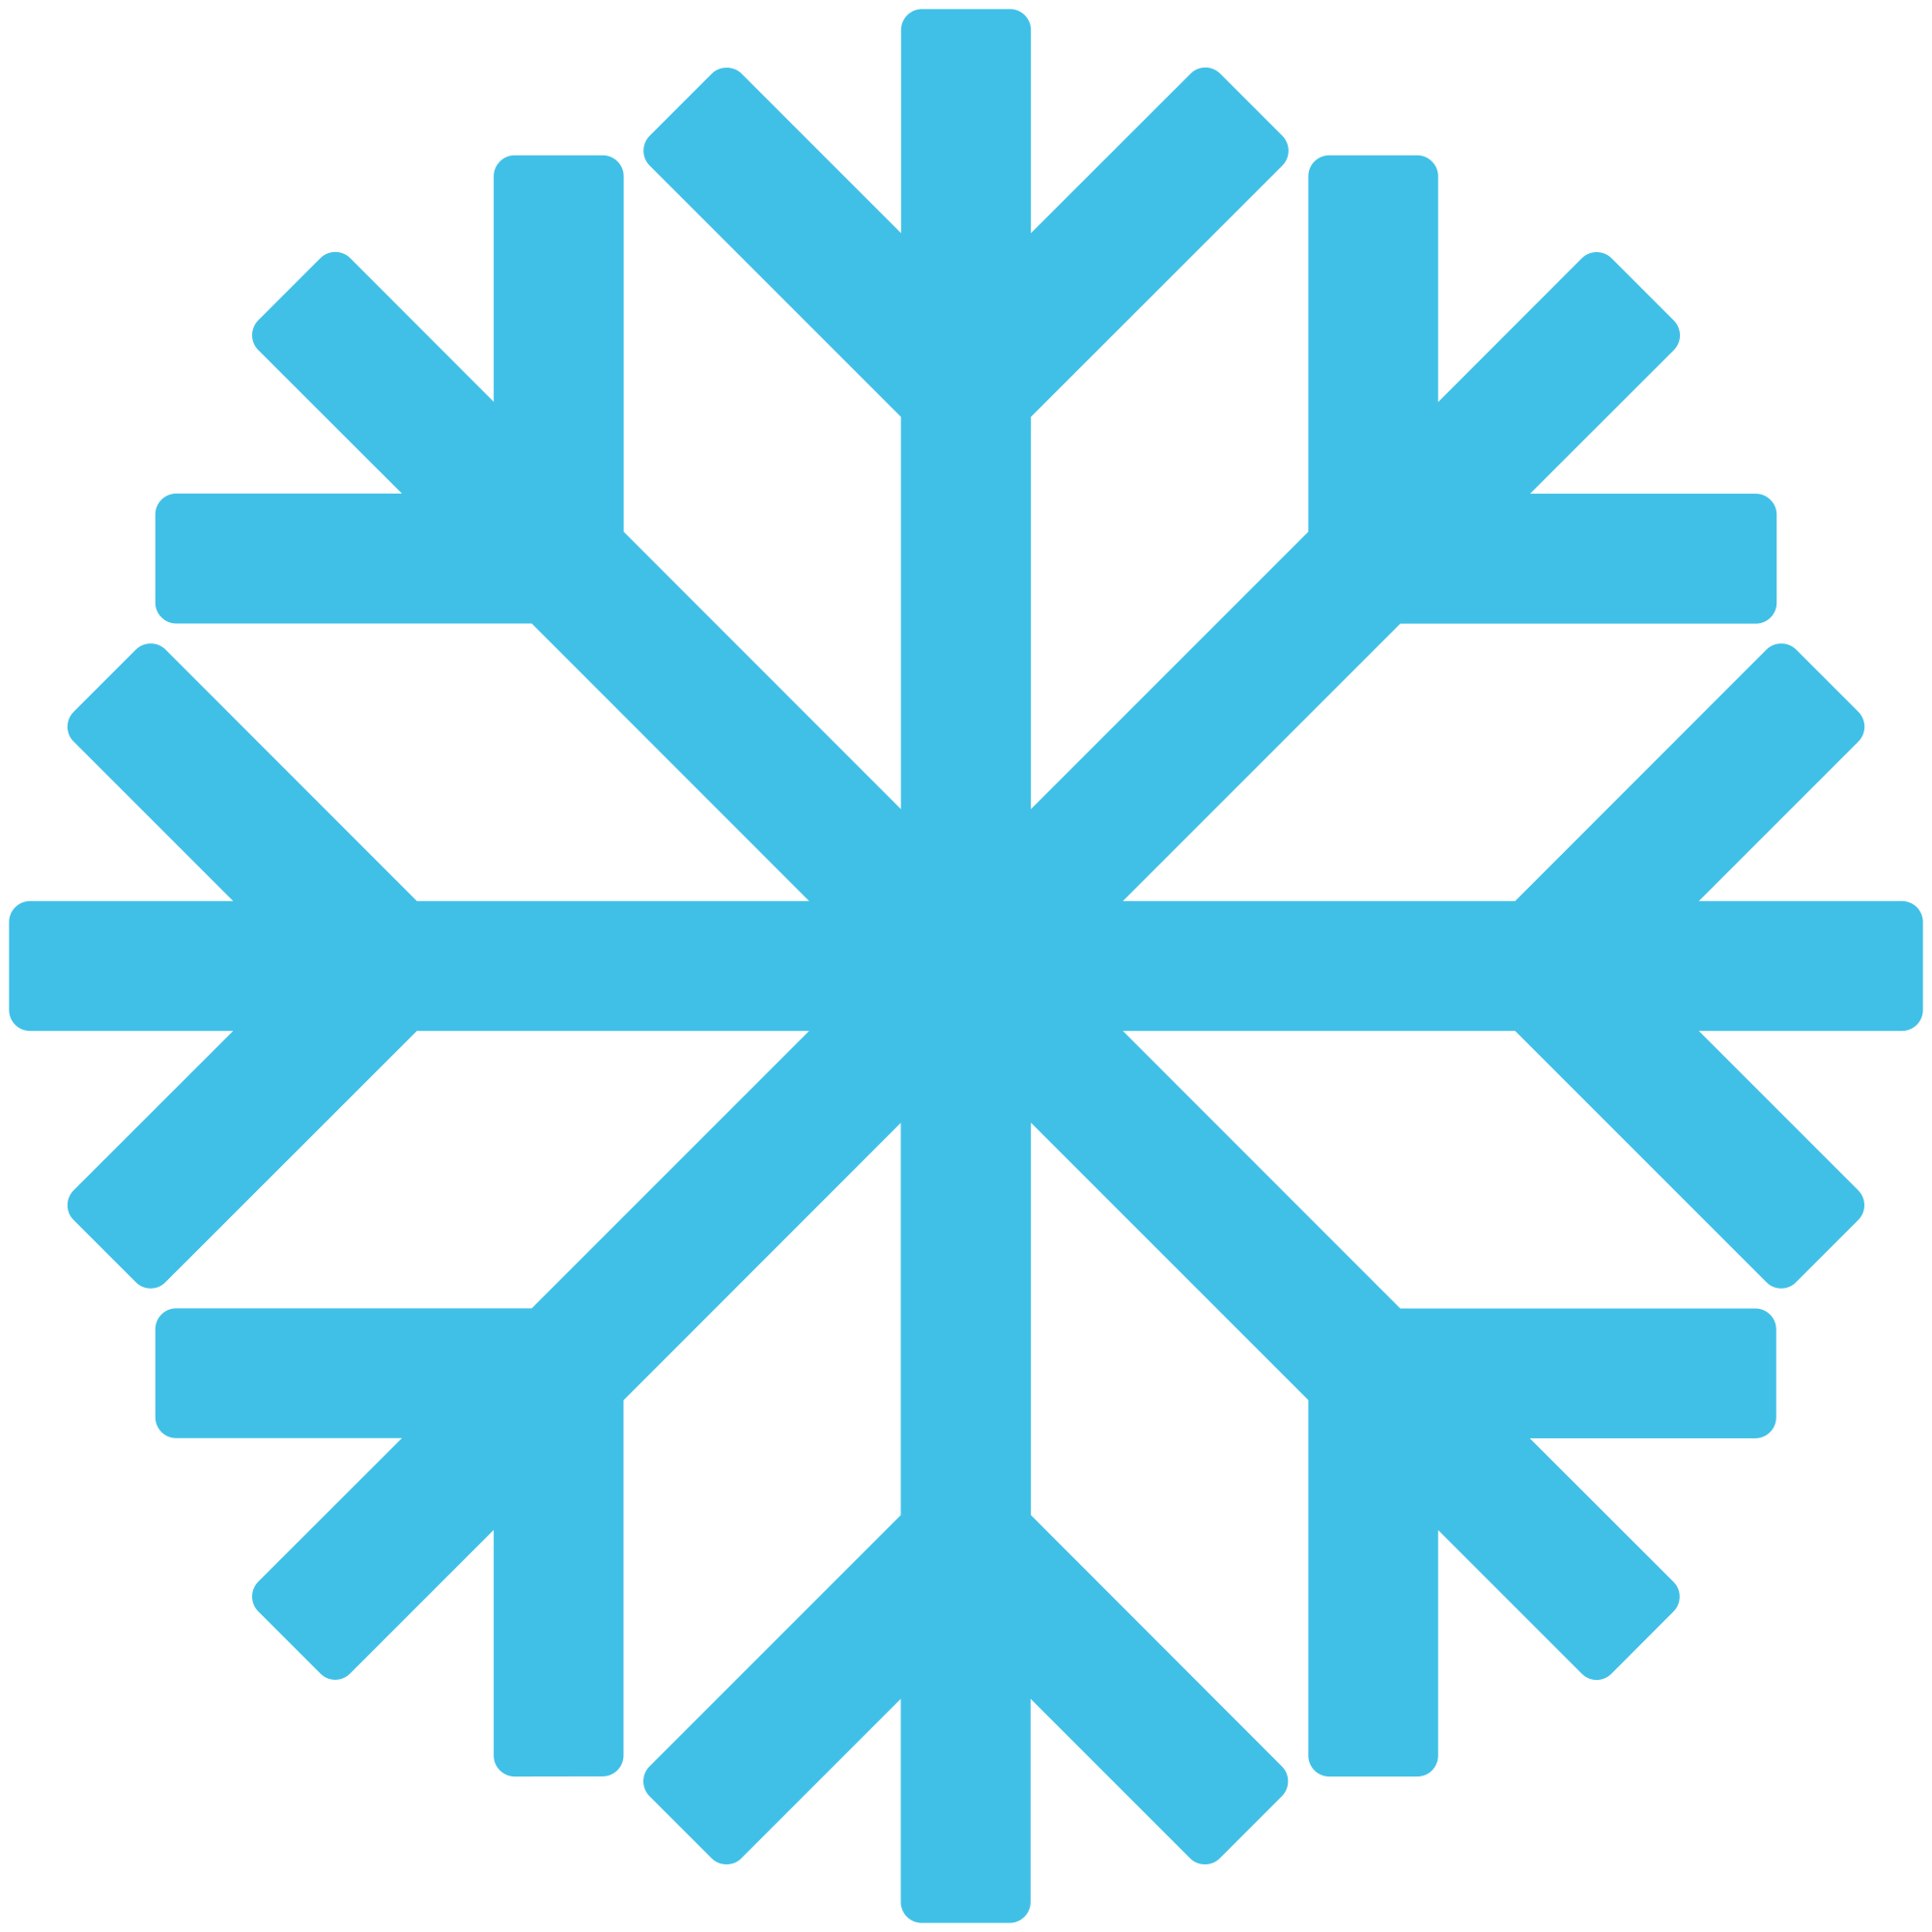 Hydroponics in the tundra. Ice clipart ice flake